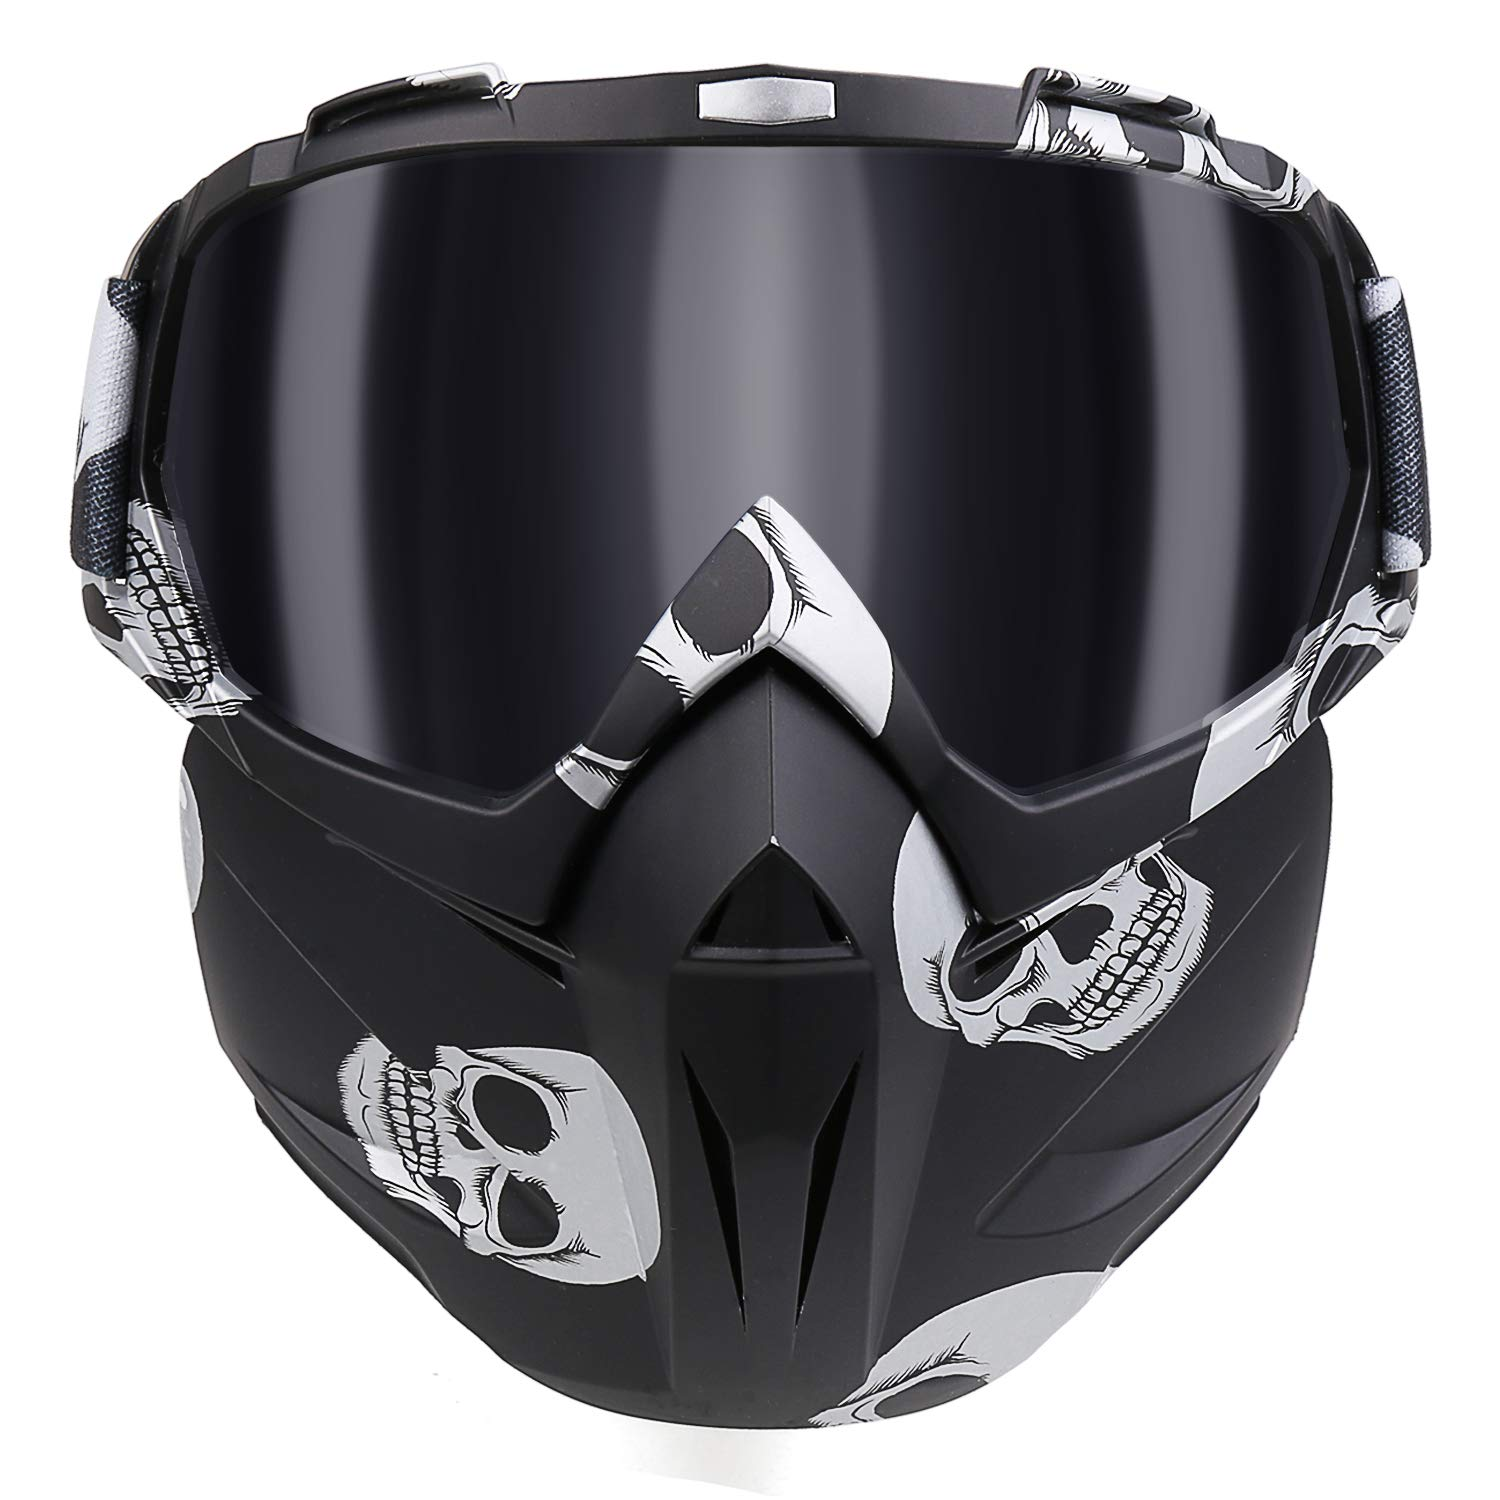 KKmoon Mortorcycle Mask Detachable Goggles and Mouth Filter for Open Face Helmet Motocross Ski Snowboard